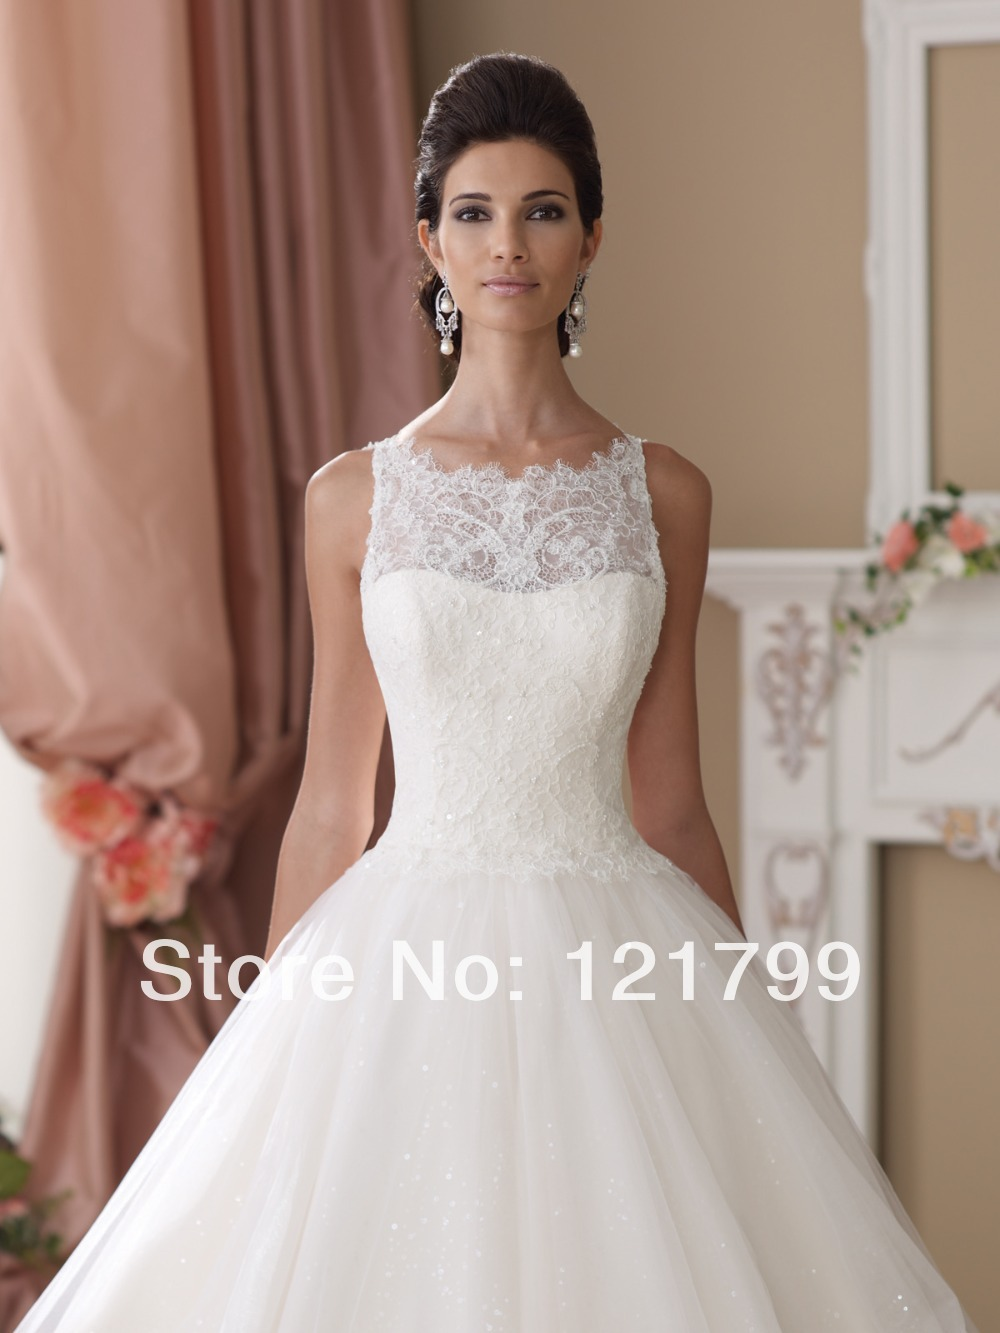 sophisticated wedding dresses classy wedding dresses sophisticated wedding dress simple and beautiful classic wedding dresses http www